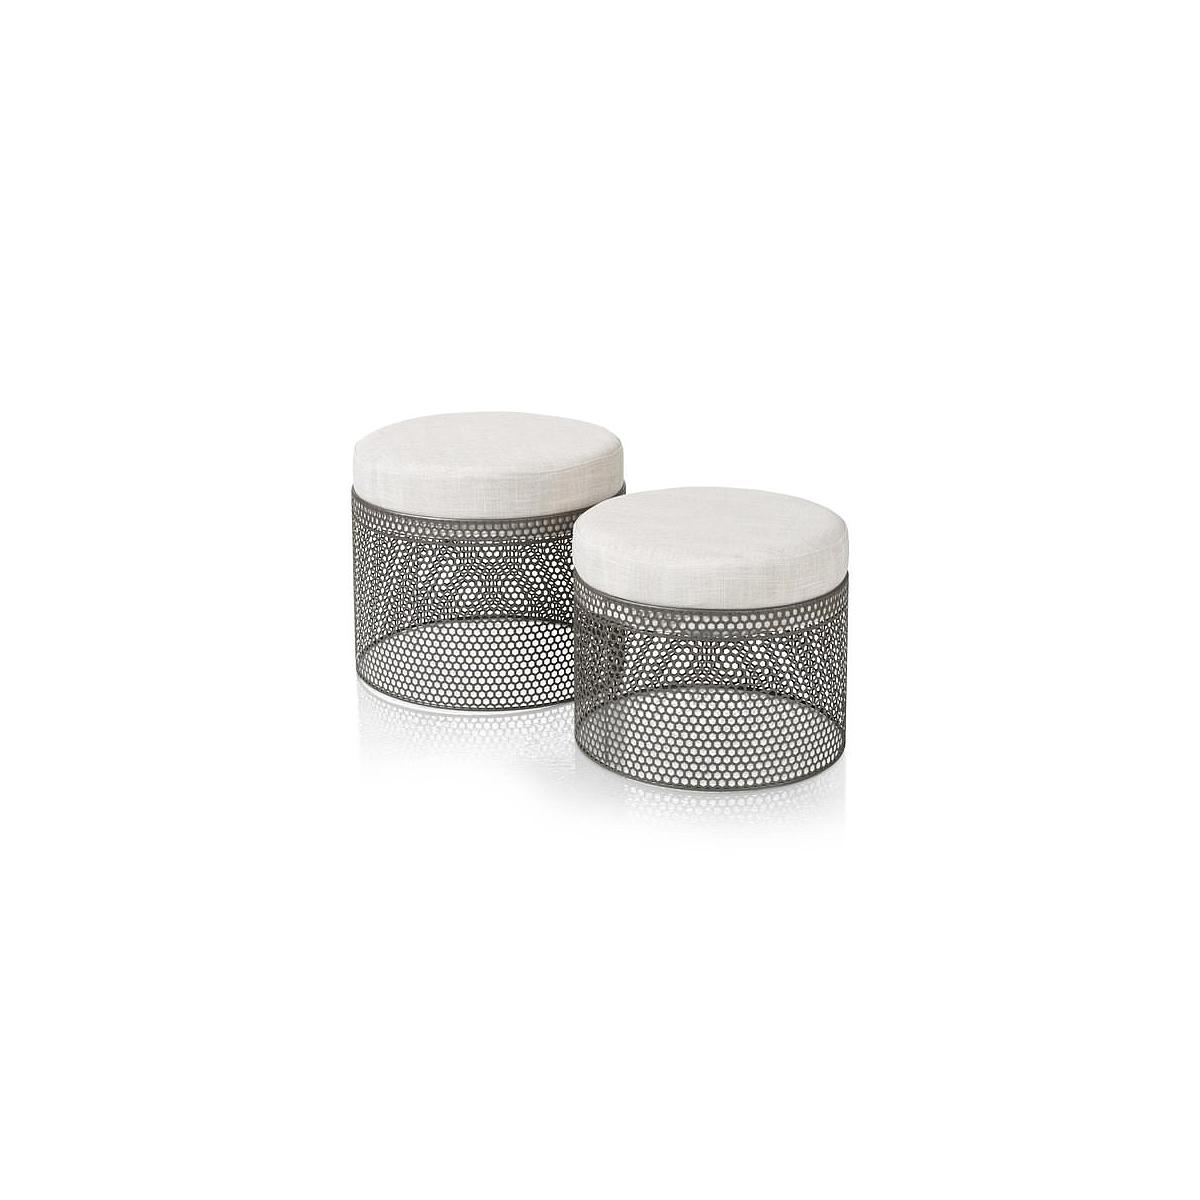 Table d'appoint ROCHE Coco Maison Set de 2